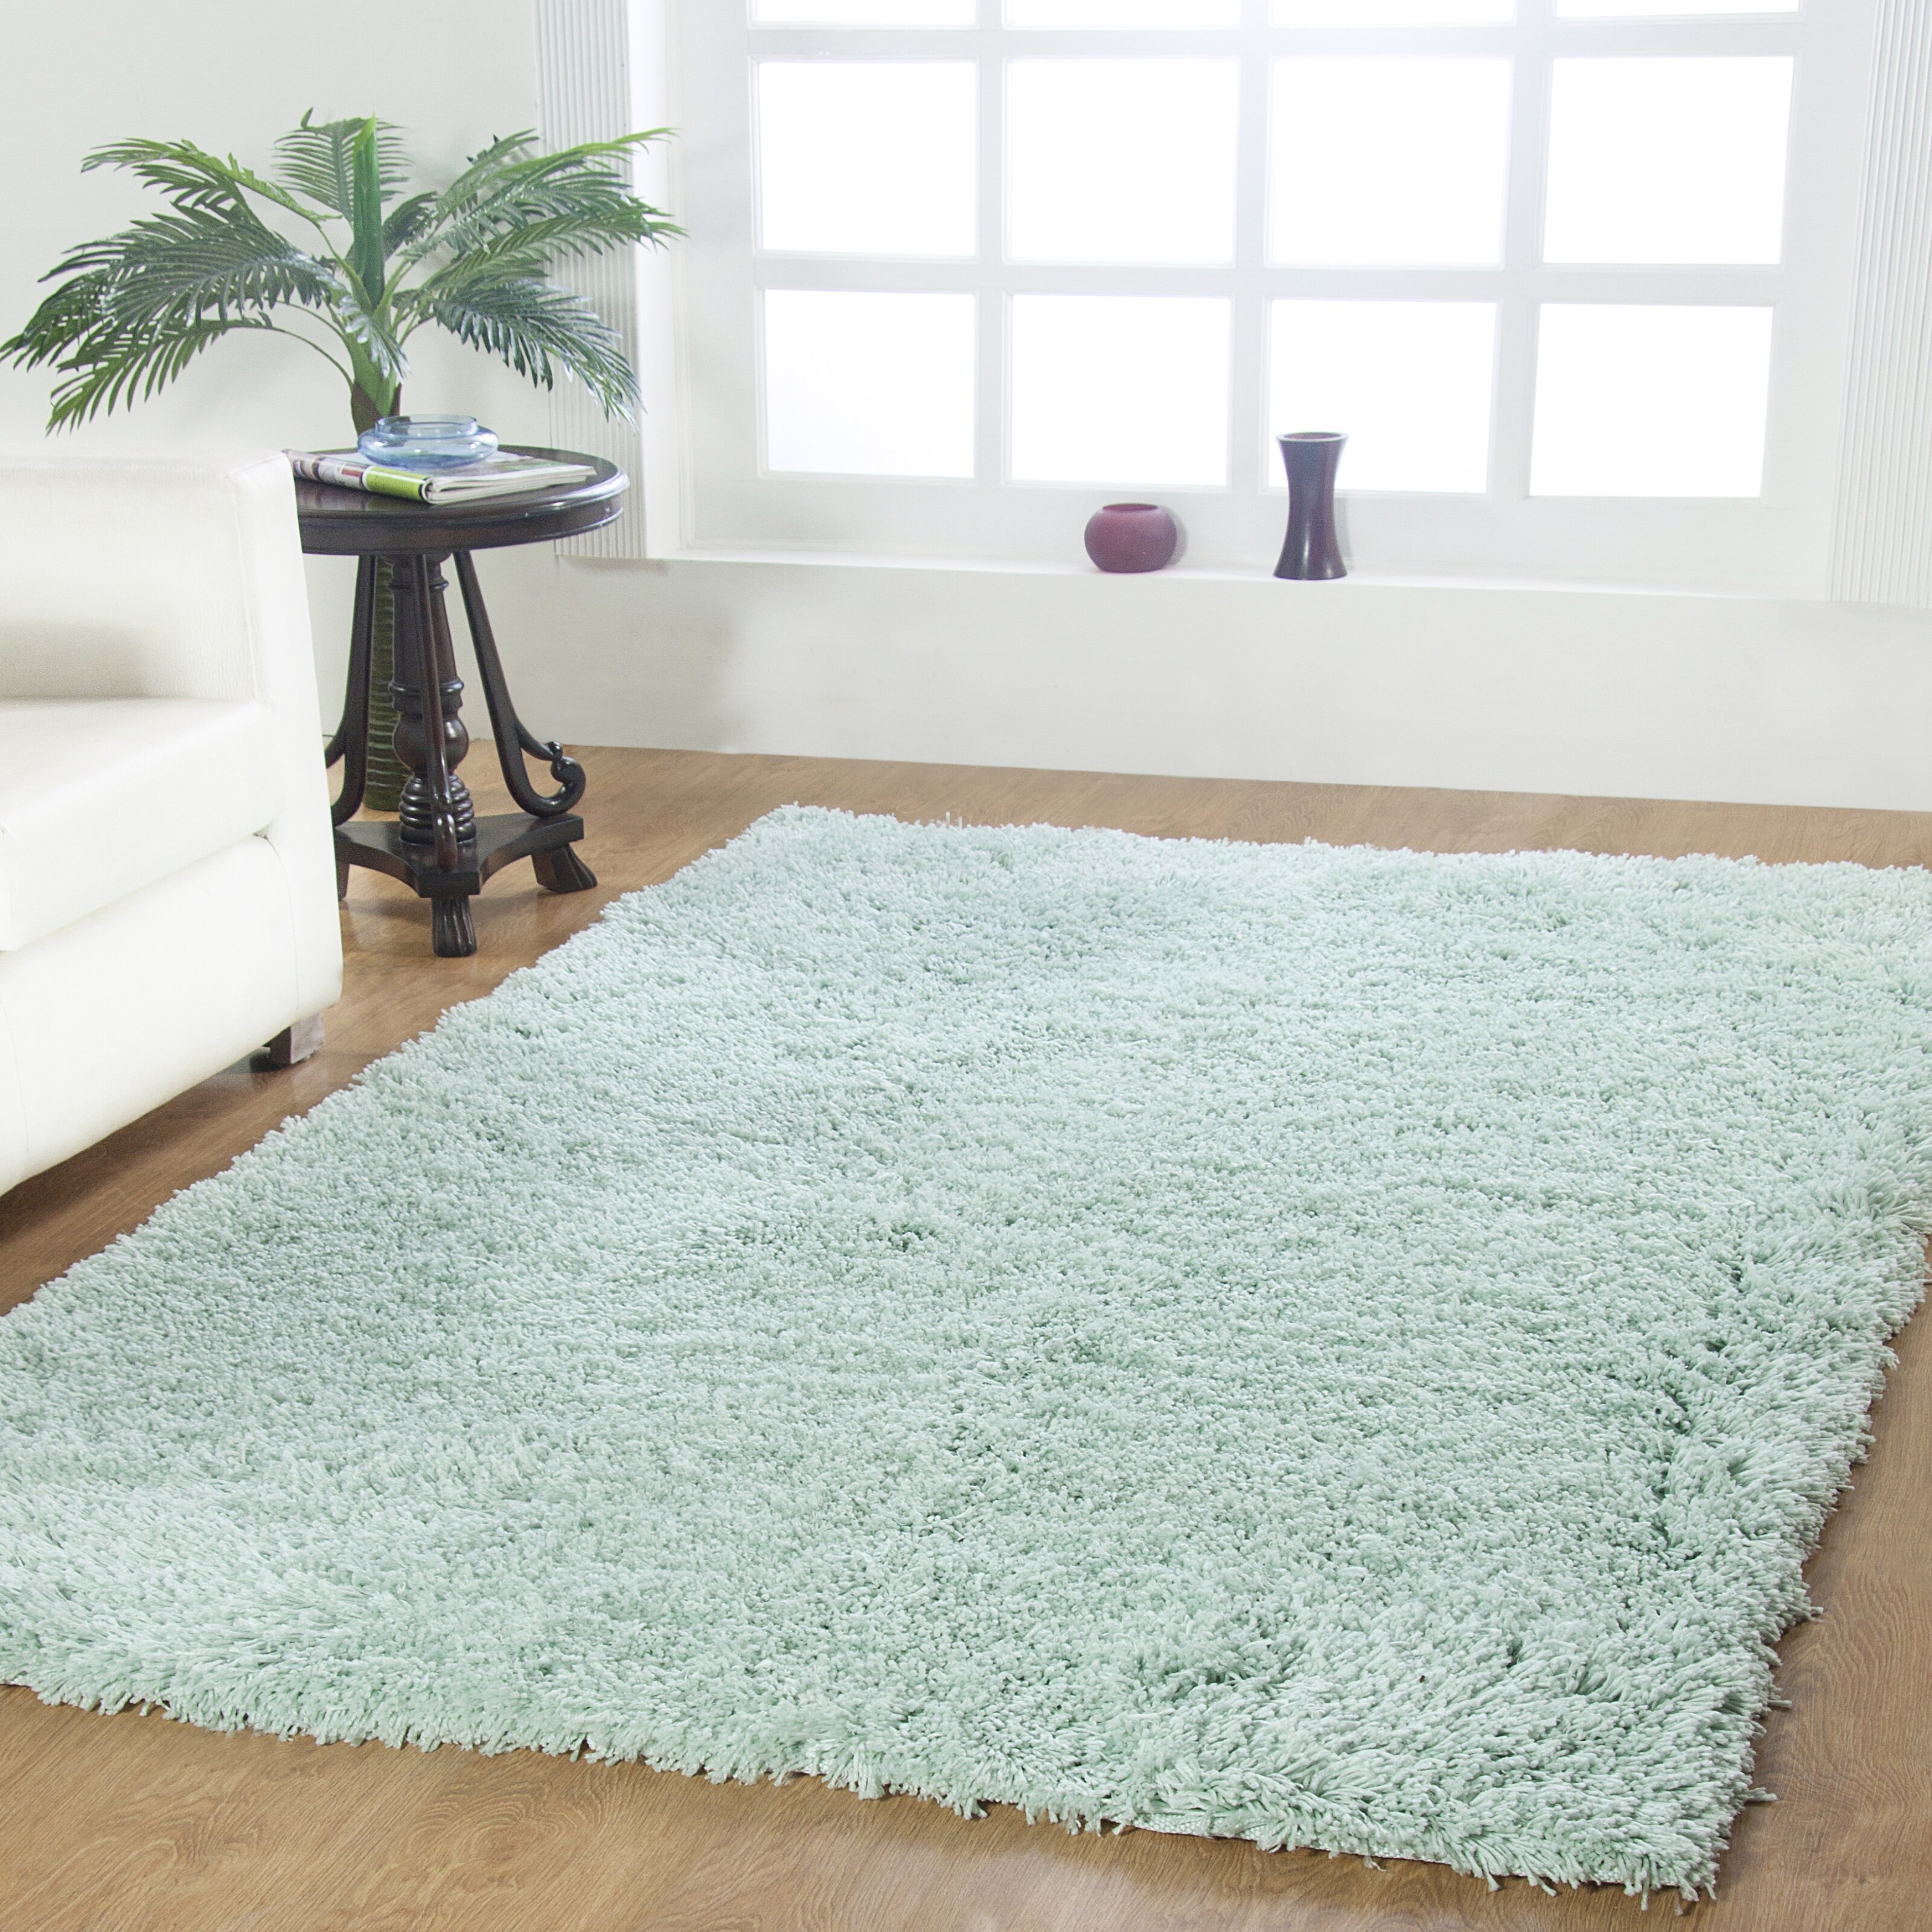 Affinity Linens Affinity Hand-Woven Aqua Area Rug